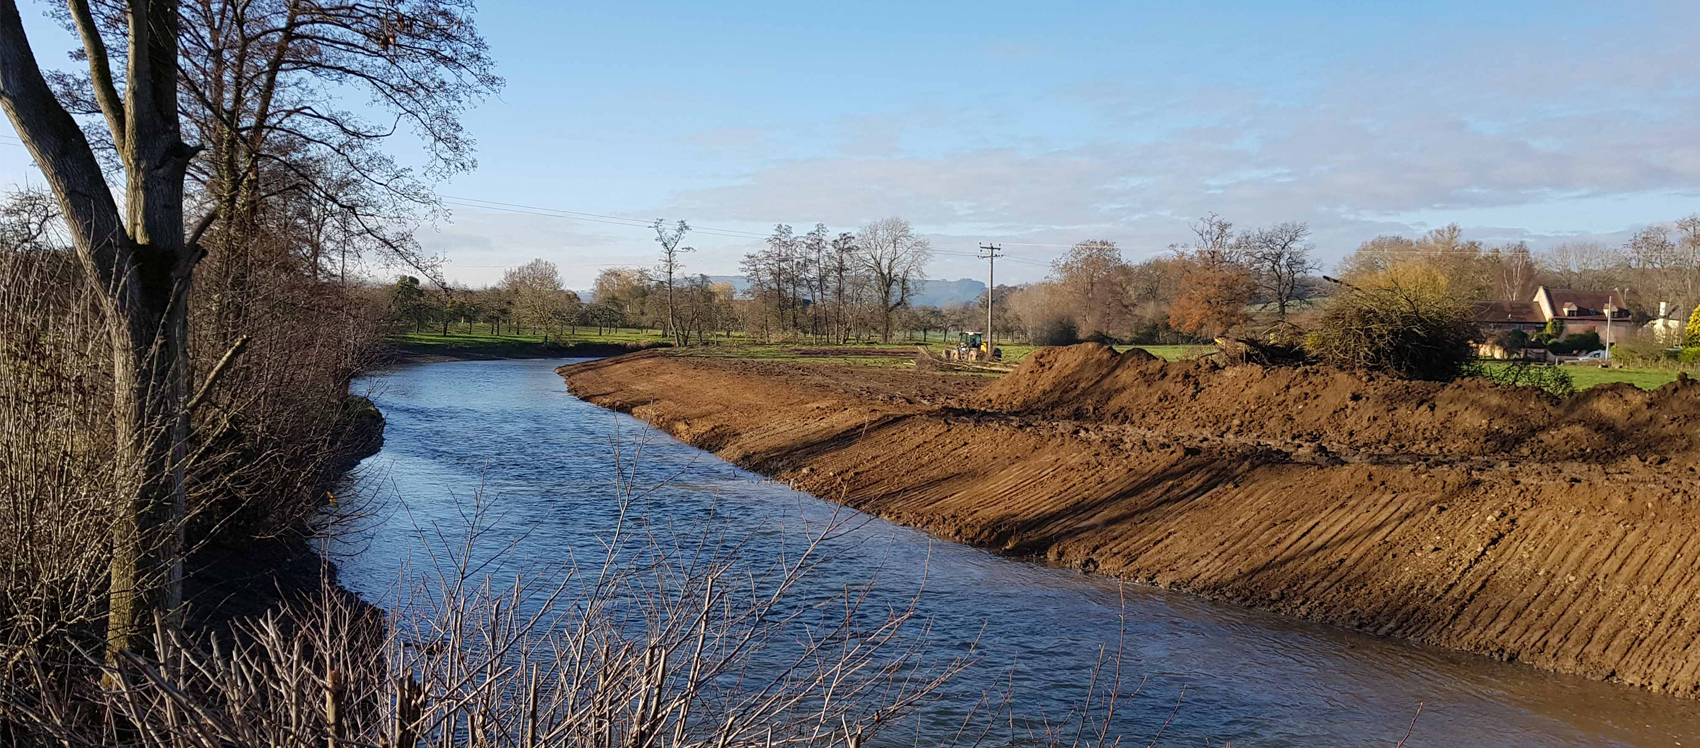 Devastation of the River Lugg